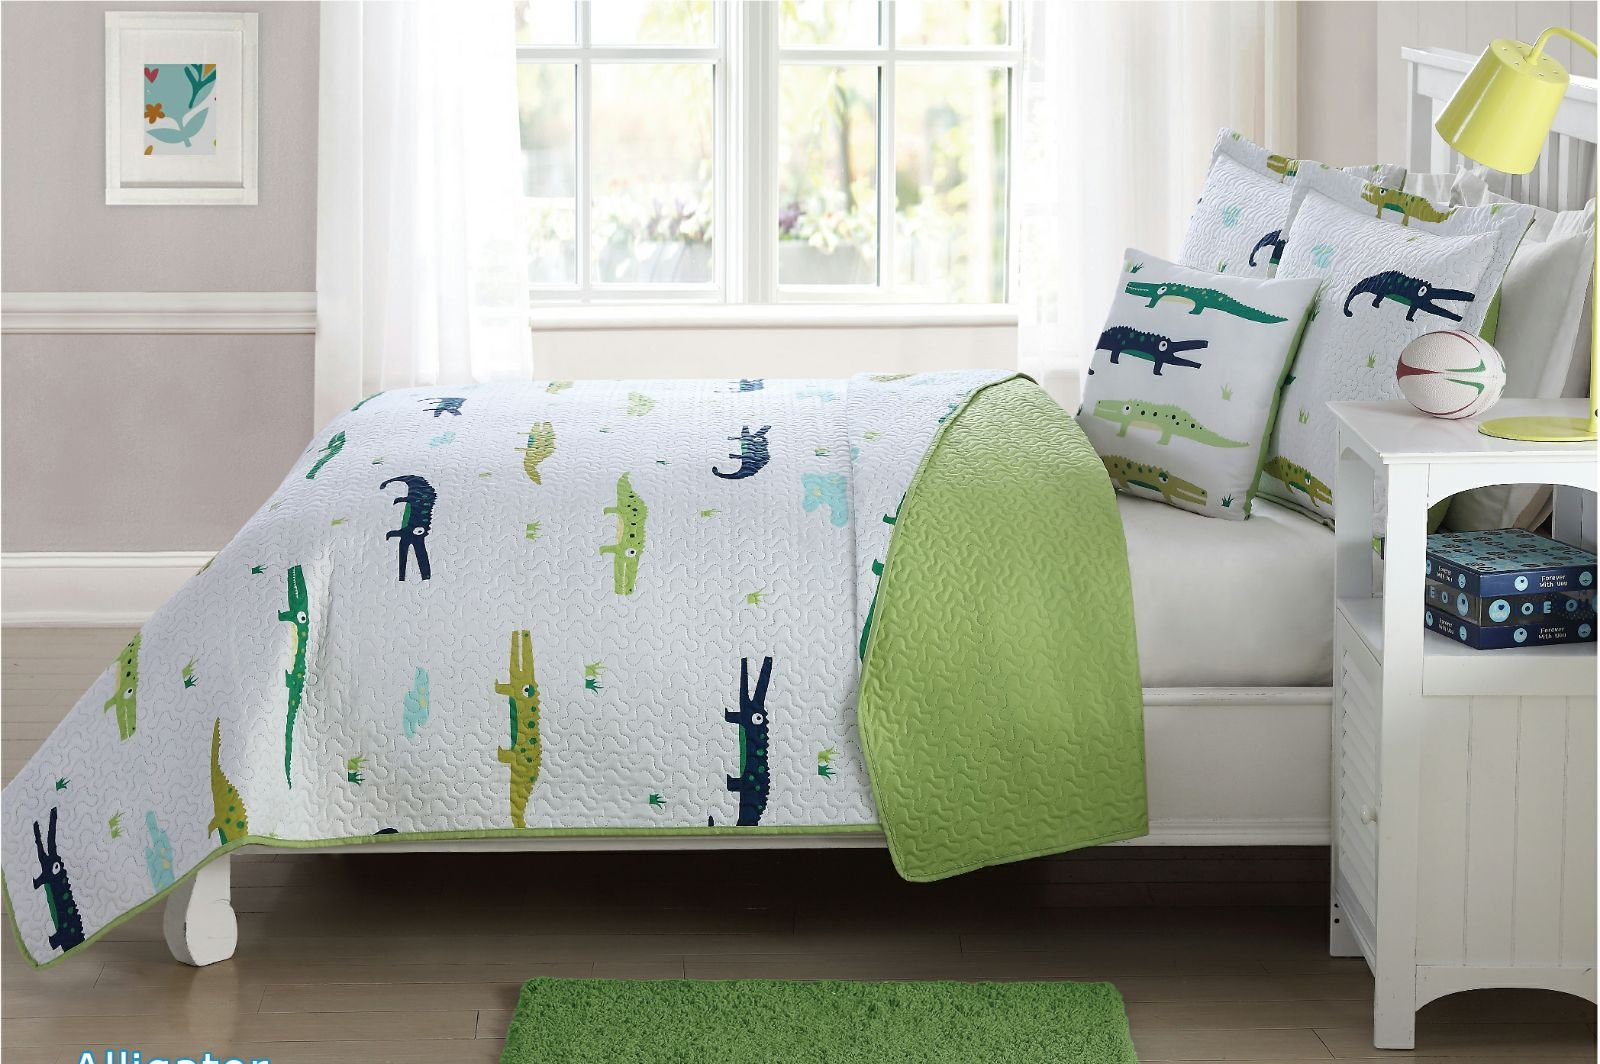 Elegant Home Multicolor Light Blue Dark Blue Green White Alligators Crocodiles Fun Reversible Printed Colorful 4 Piece Quilt Bedspread Bedding Set with Decorative Pillow for Kids / Boys (Full)